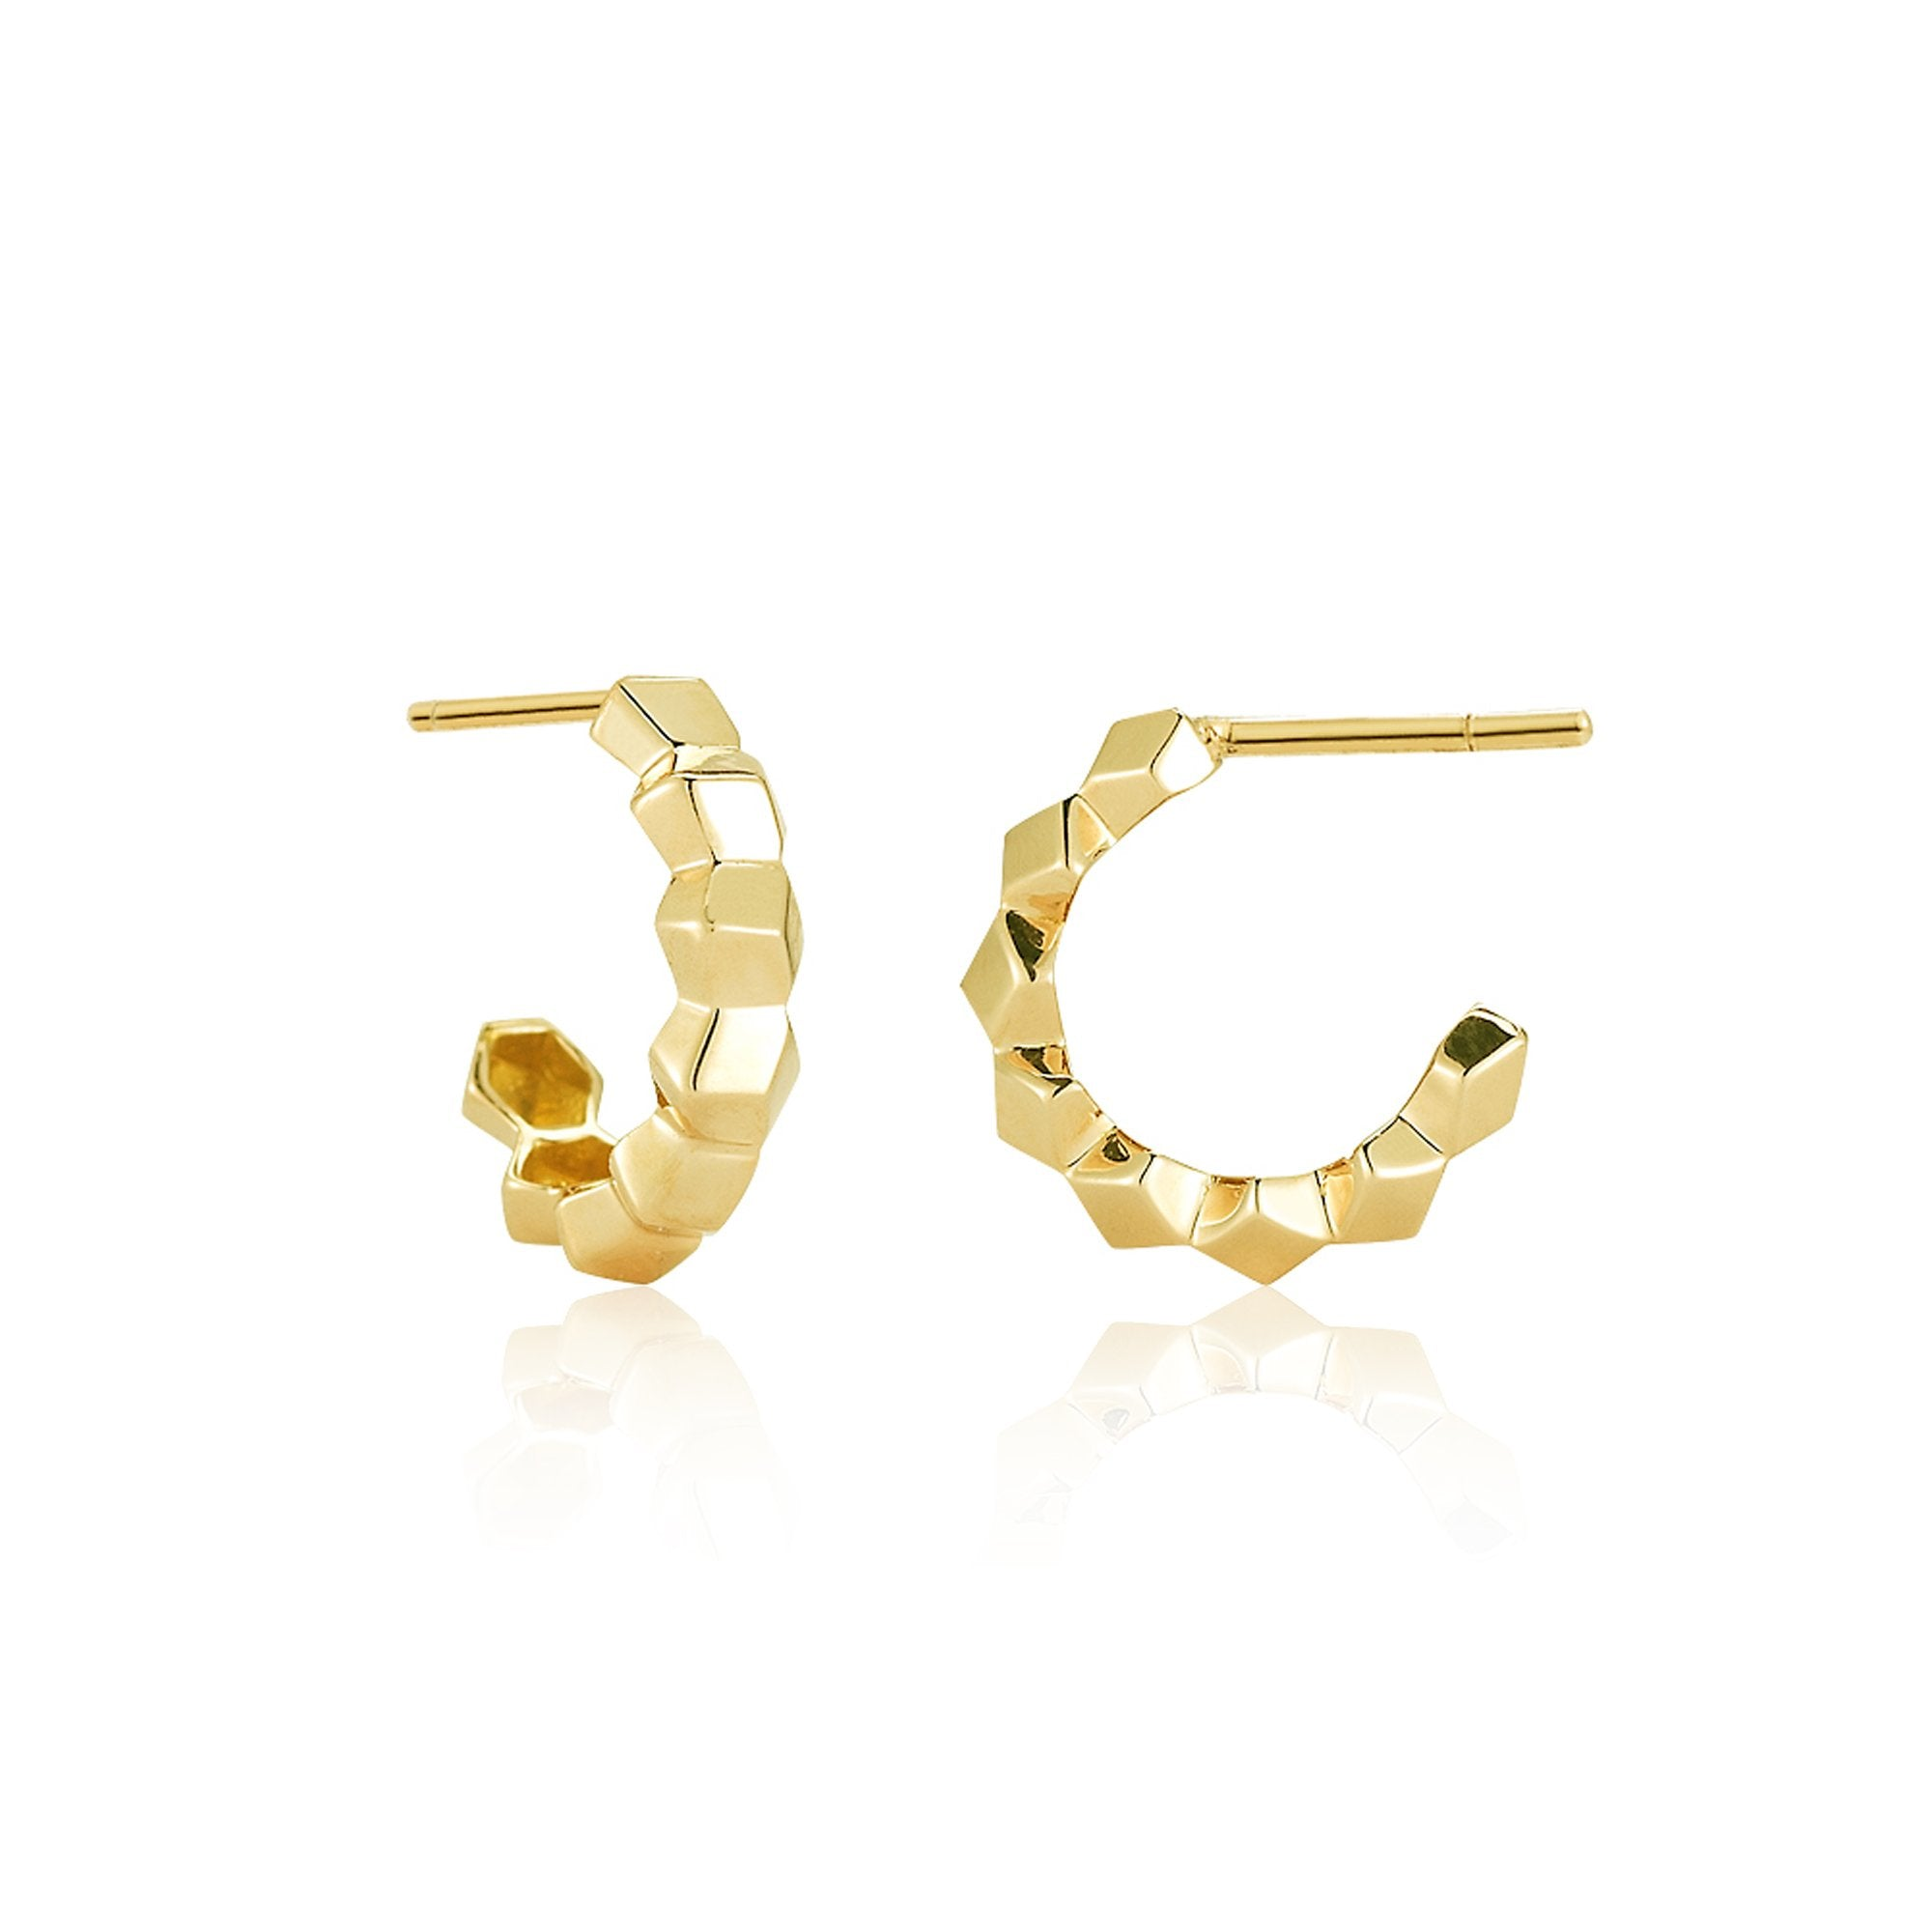 Yellow Gold Brillante® Hoop Earrings, Petite - Paolo Costagli